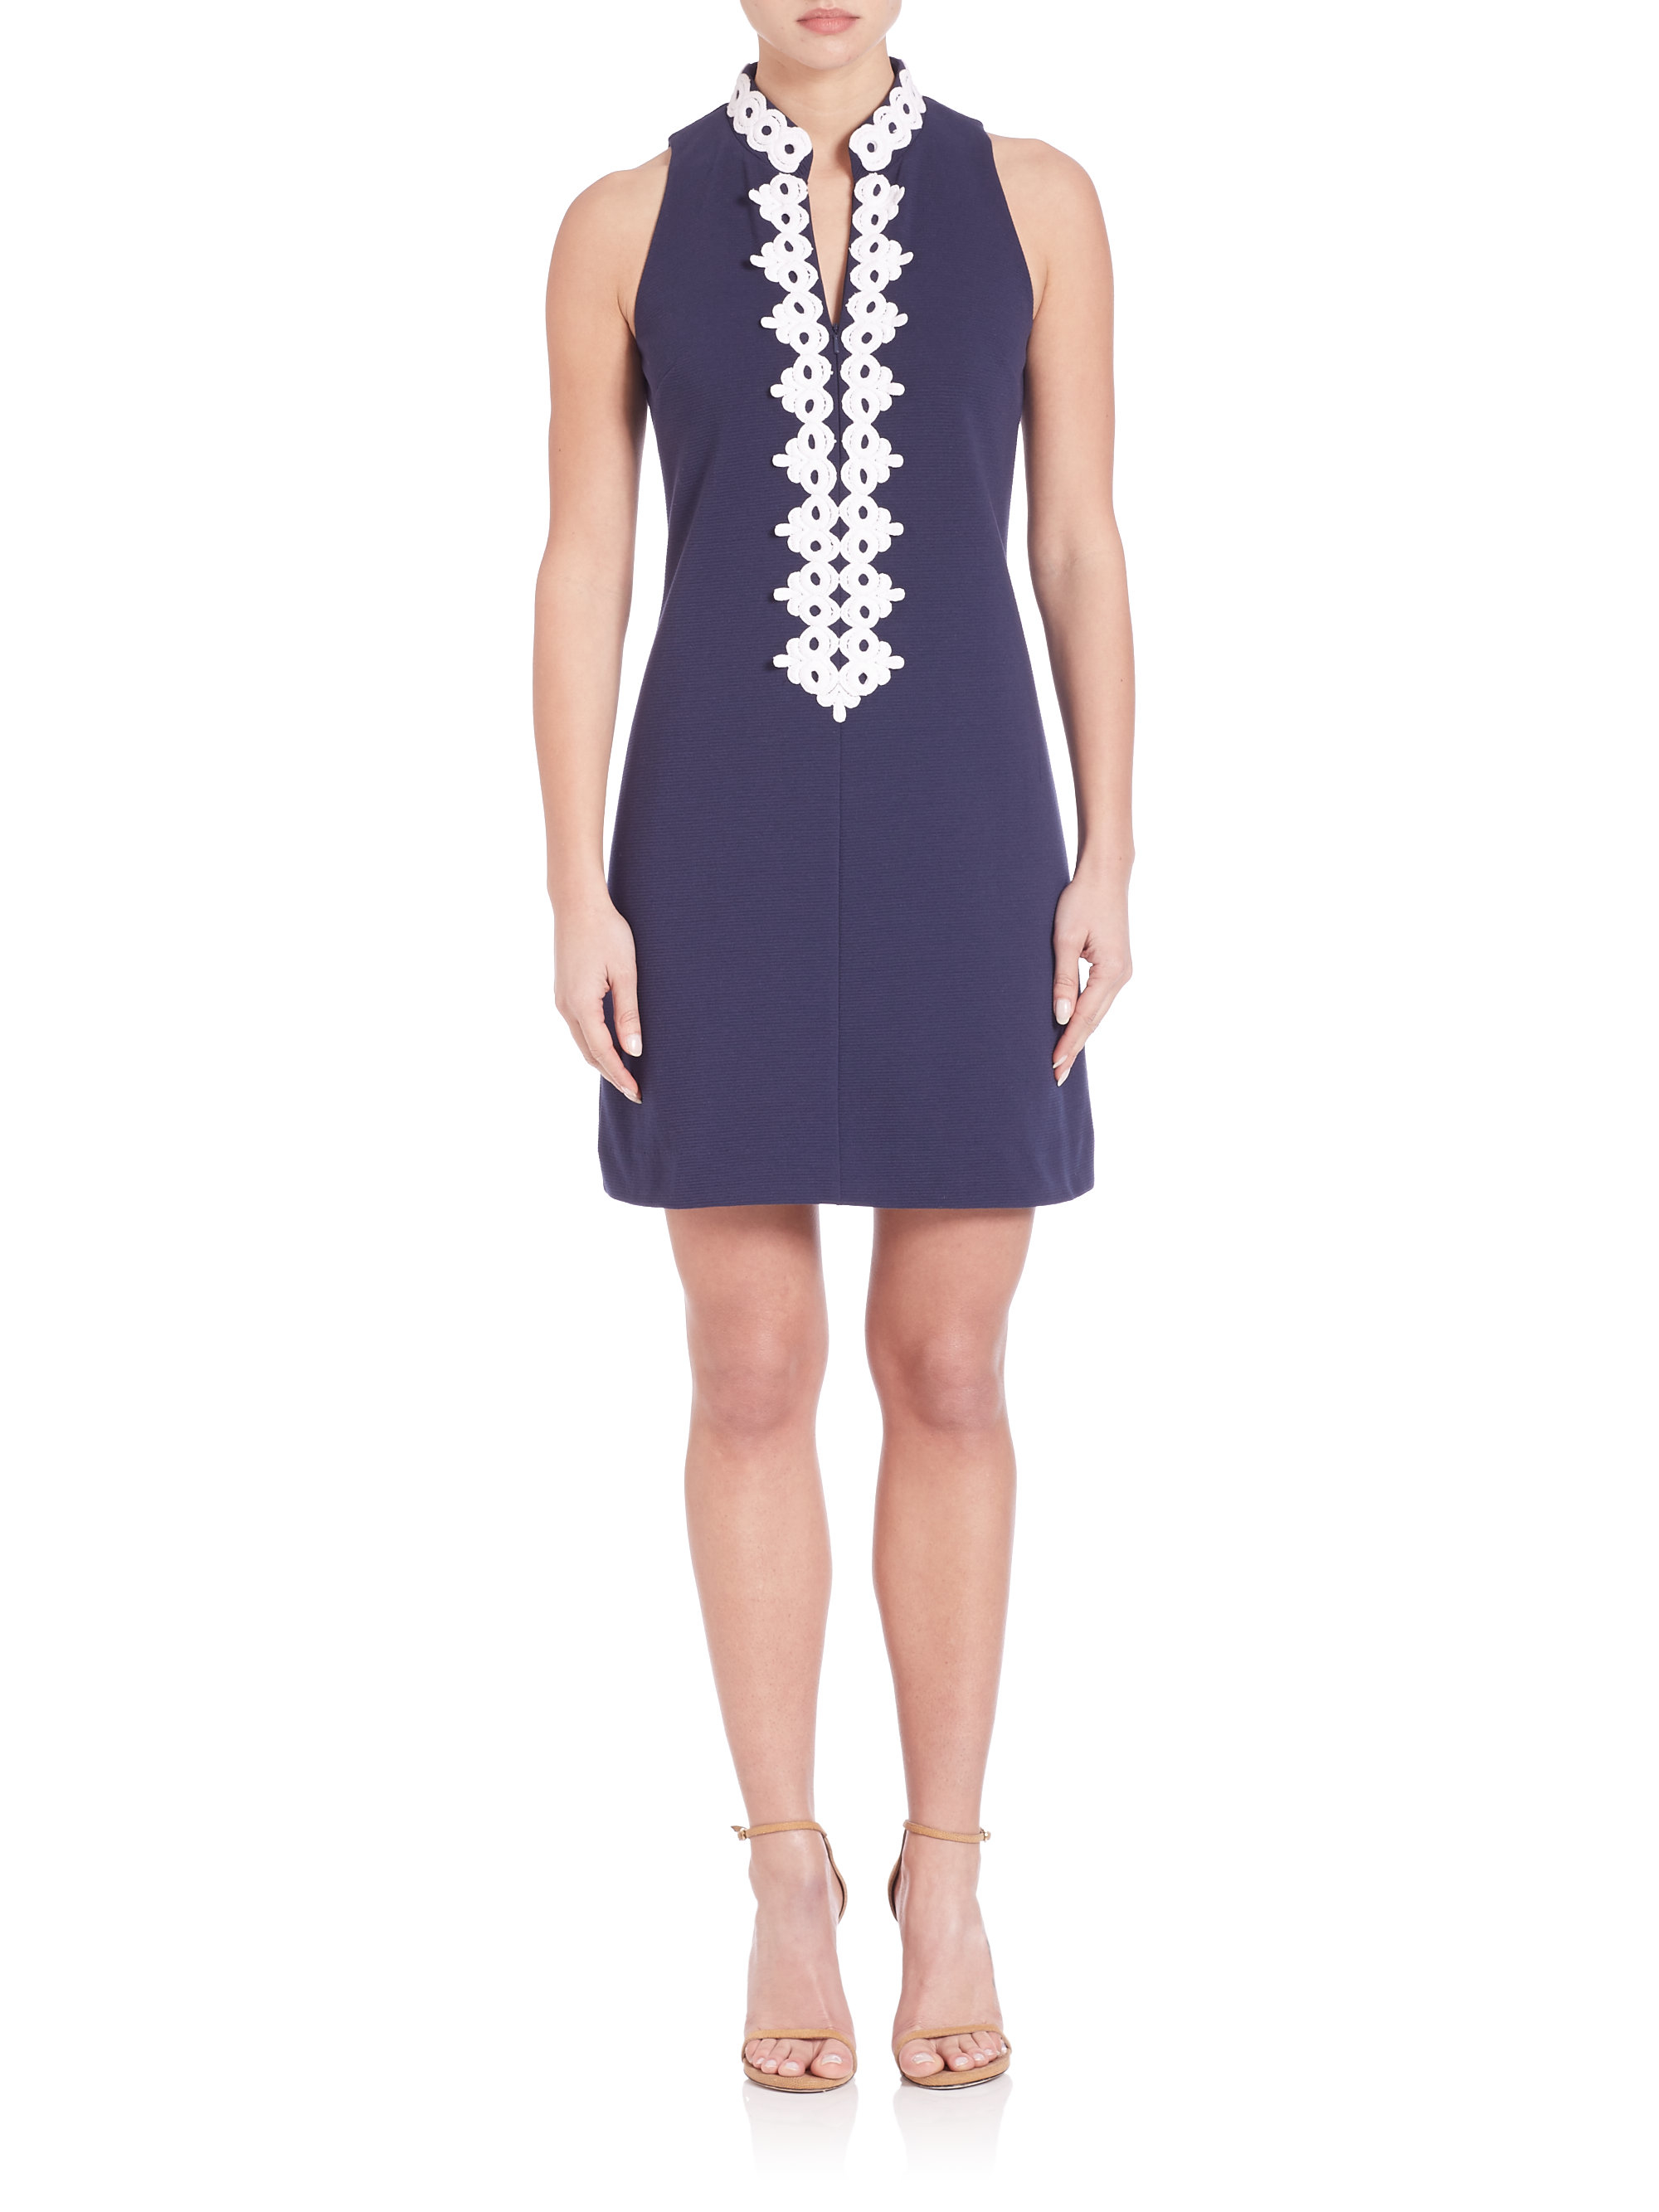 Lyst - Lilly Pulitzer Callista Lace-detail Shift Dress in Blue